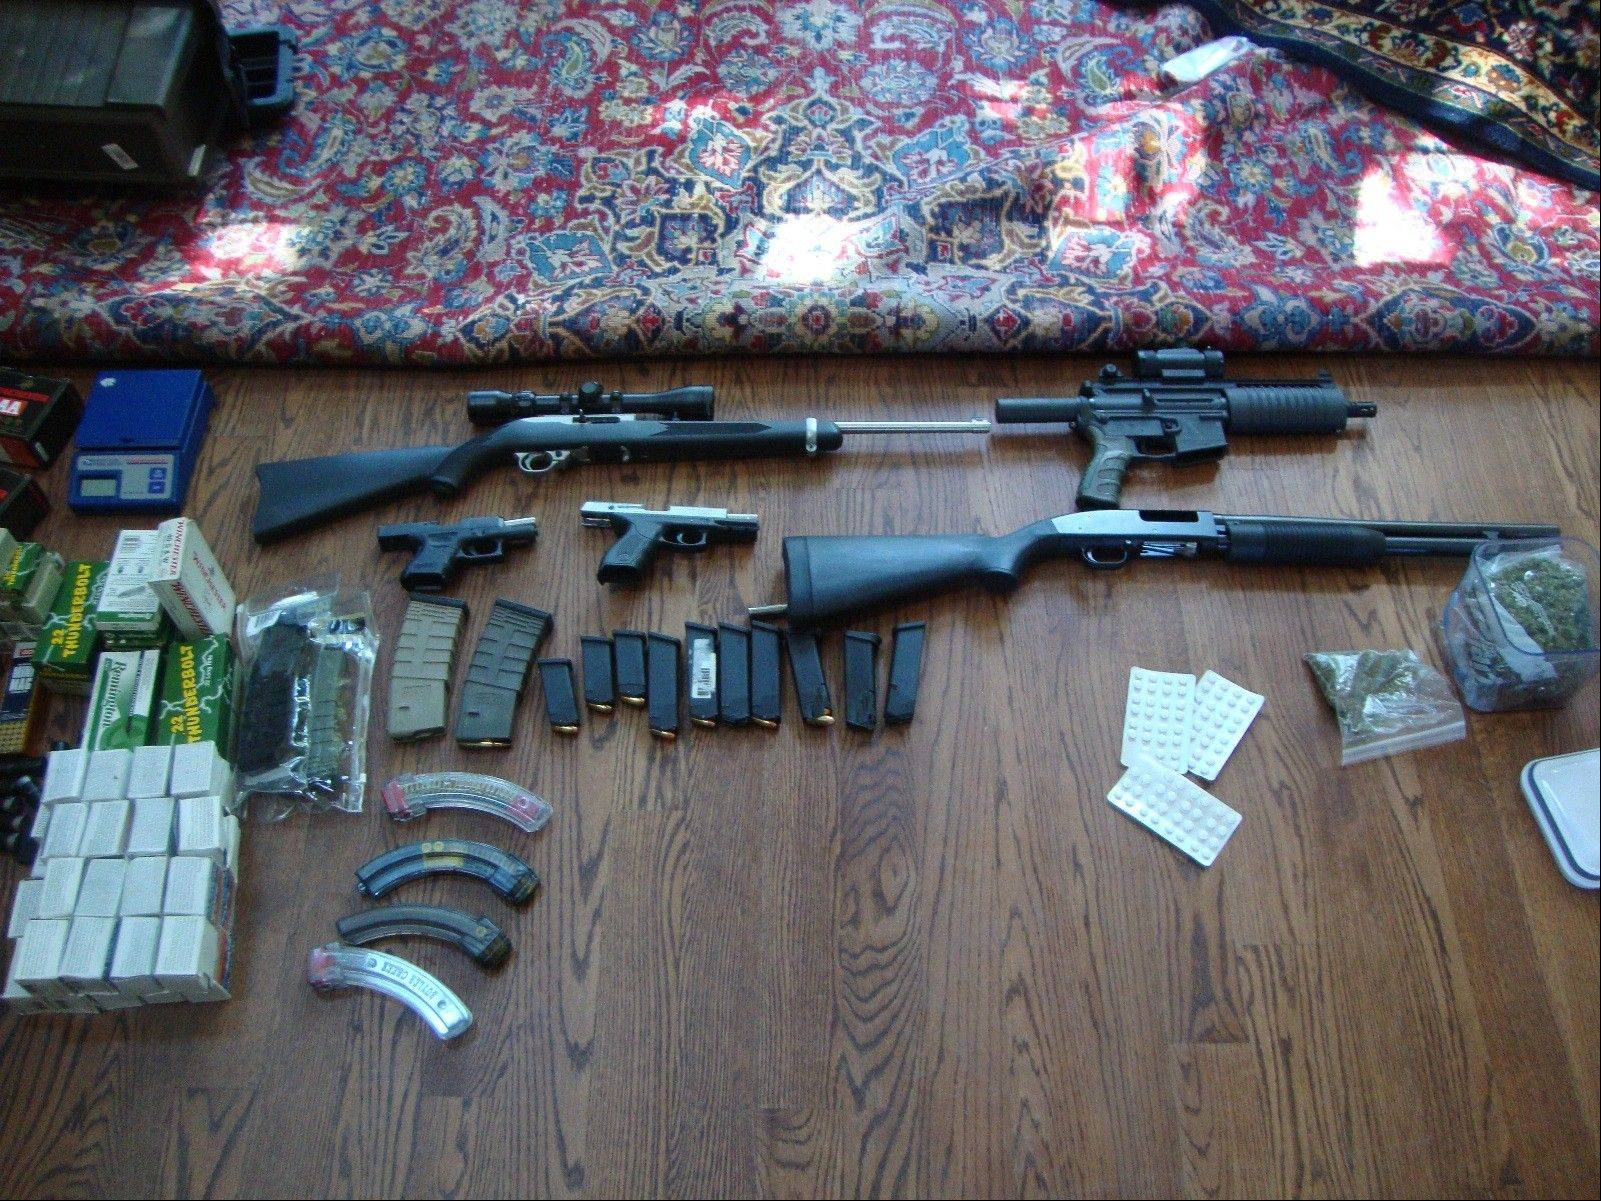 Pot, guns found in Glenview house during eviction